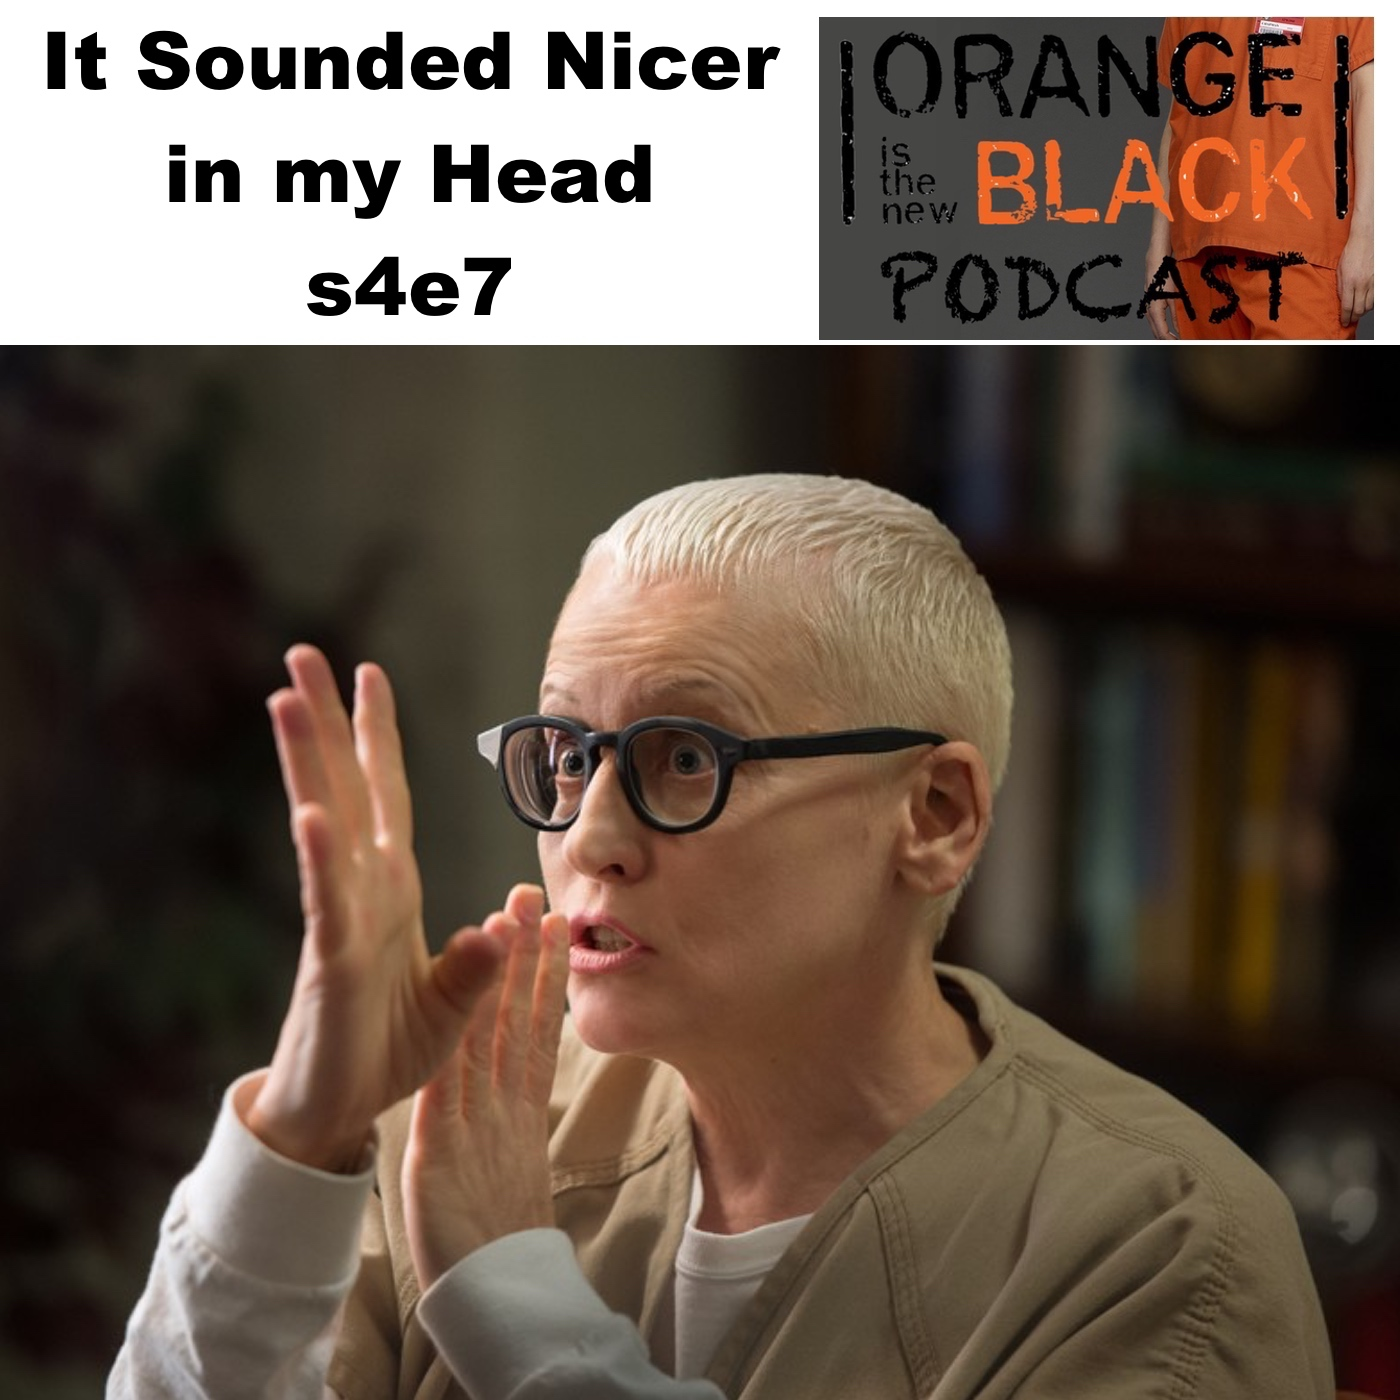 It Sounded Nicer in My Head s4e7 - Orange is the New Black Podcast